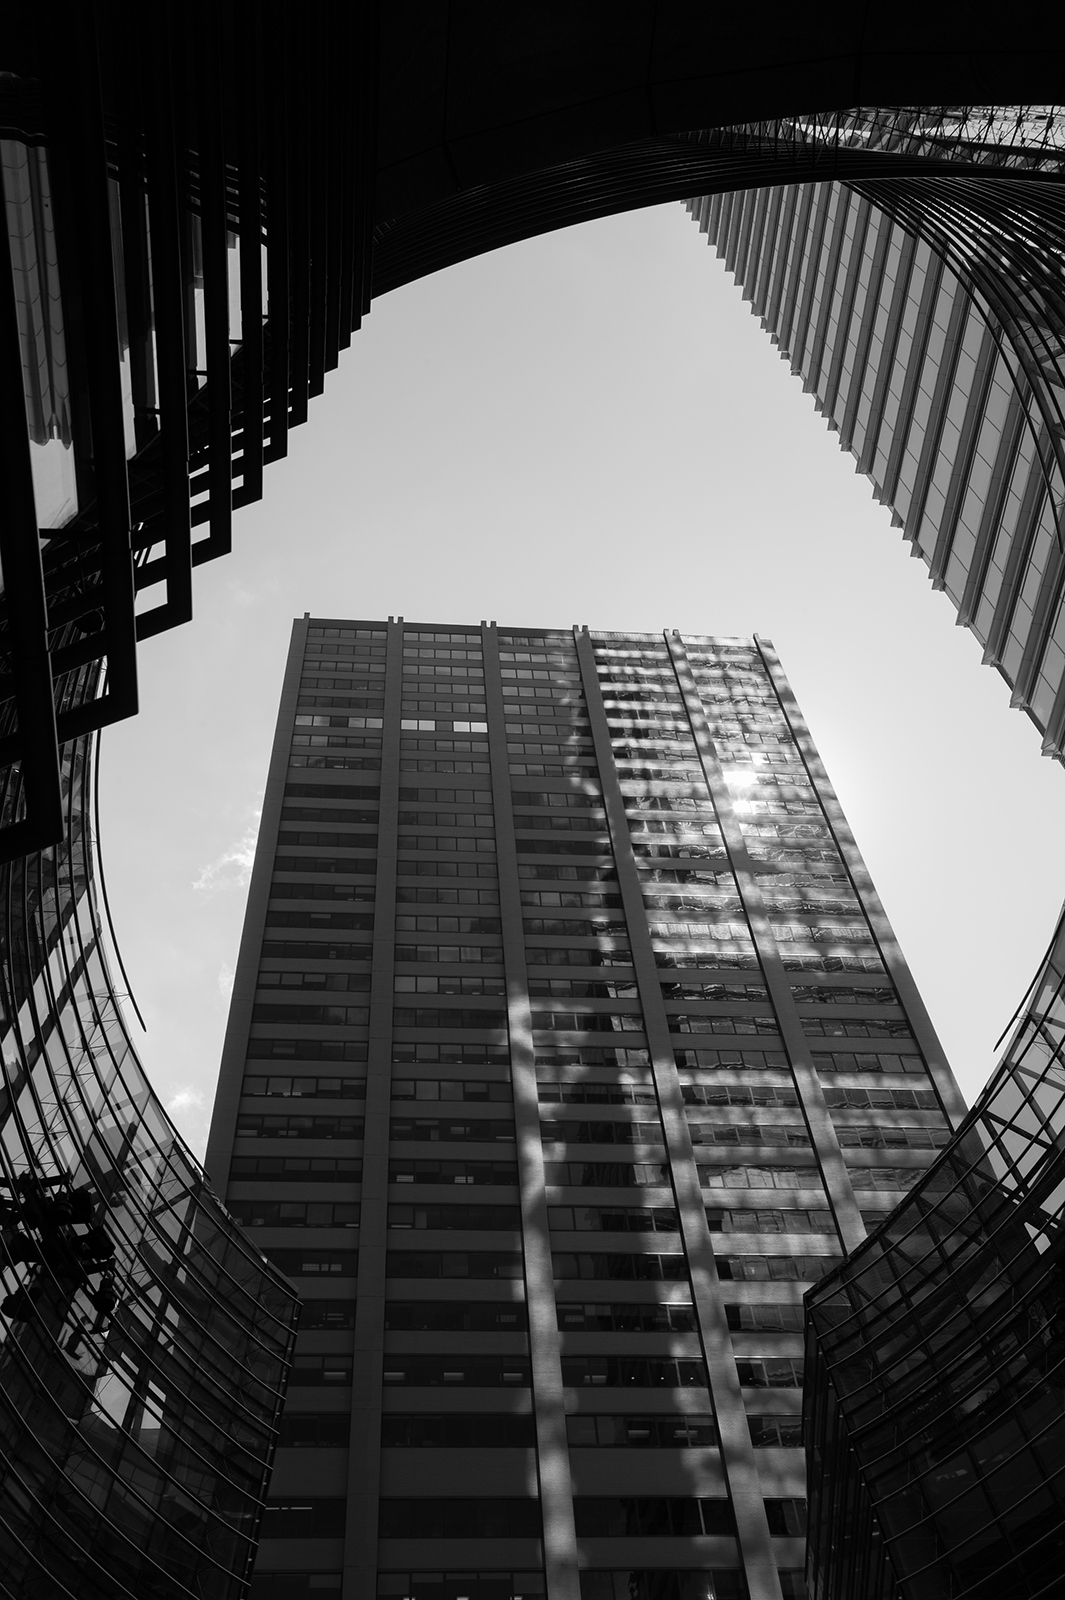 Upward view of giant buildings in New York, USA